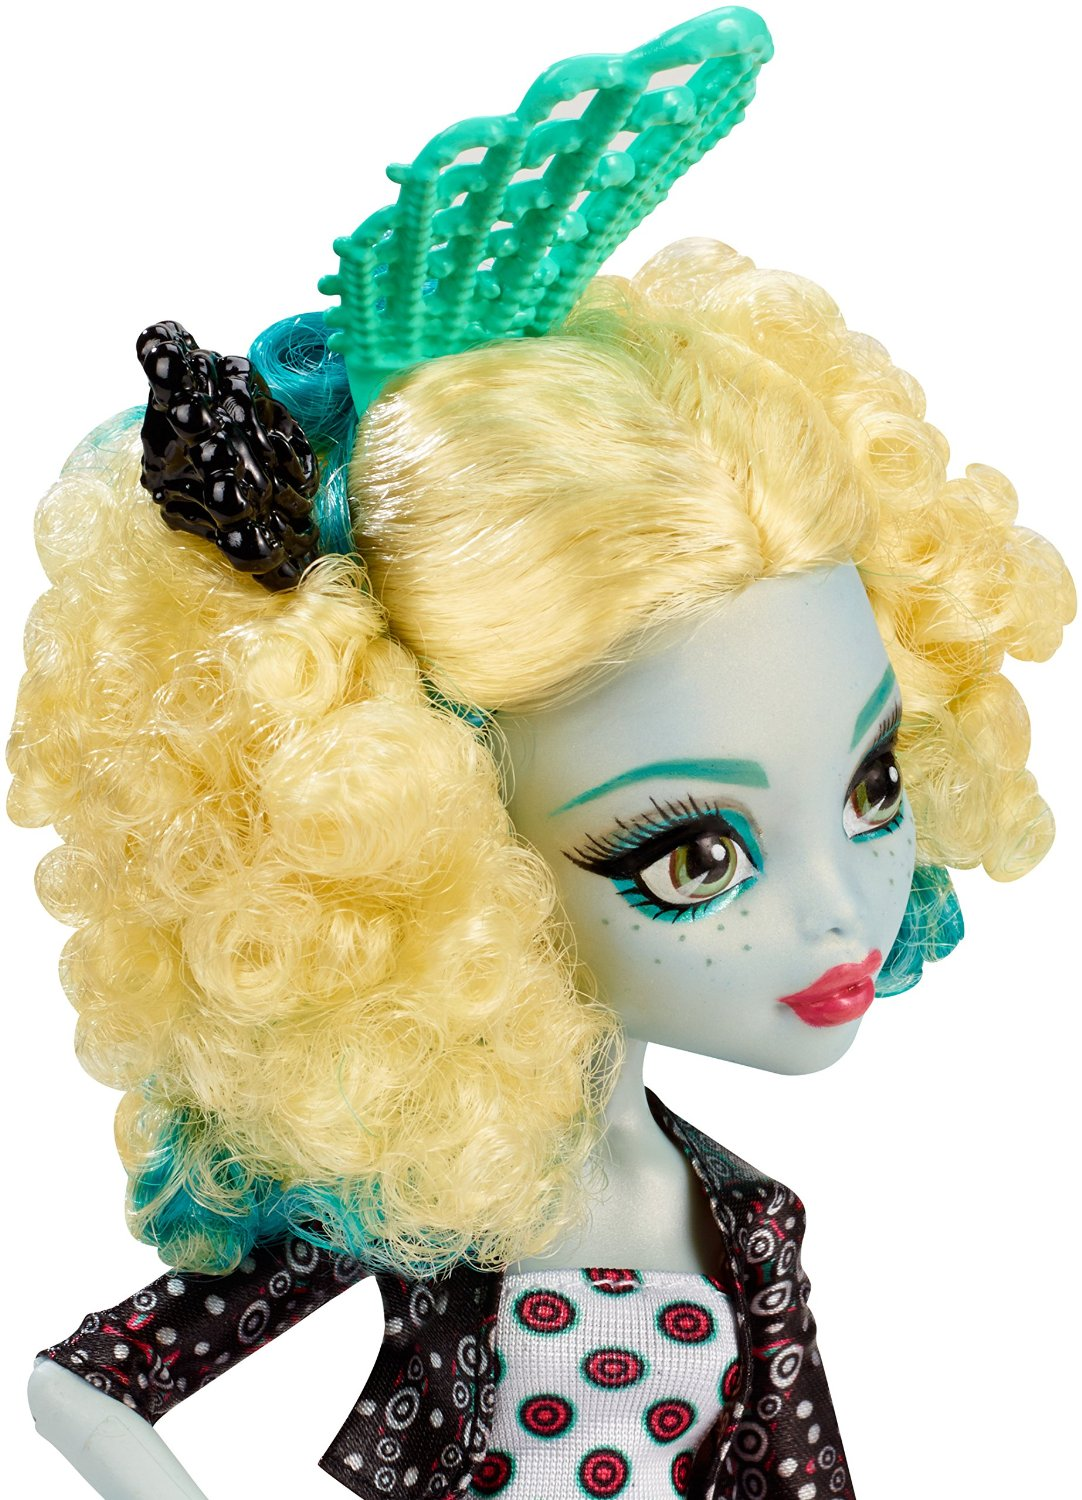 Mattel Monster High Lagoona Blue Výměnný program 27 cm